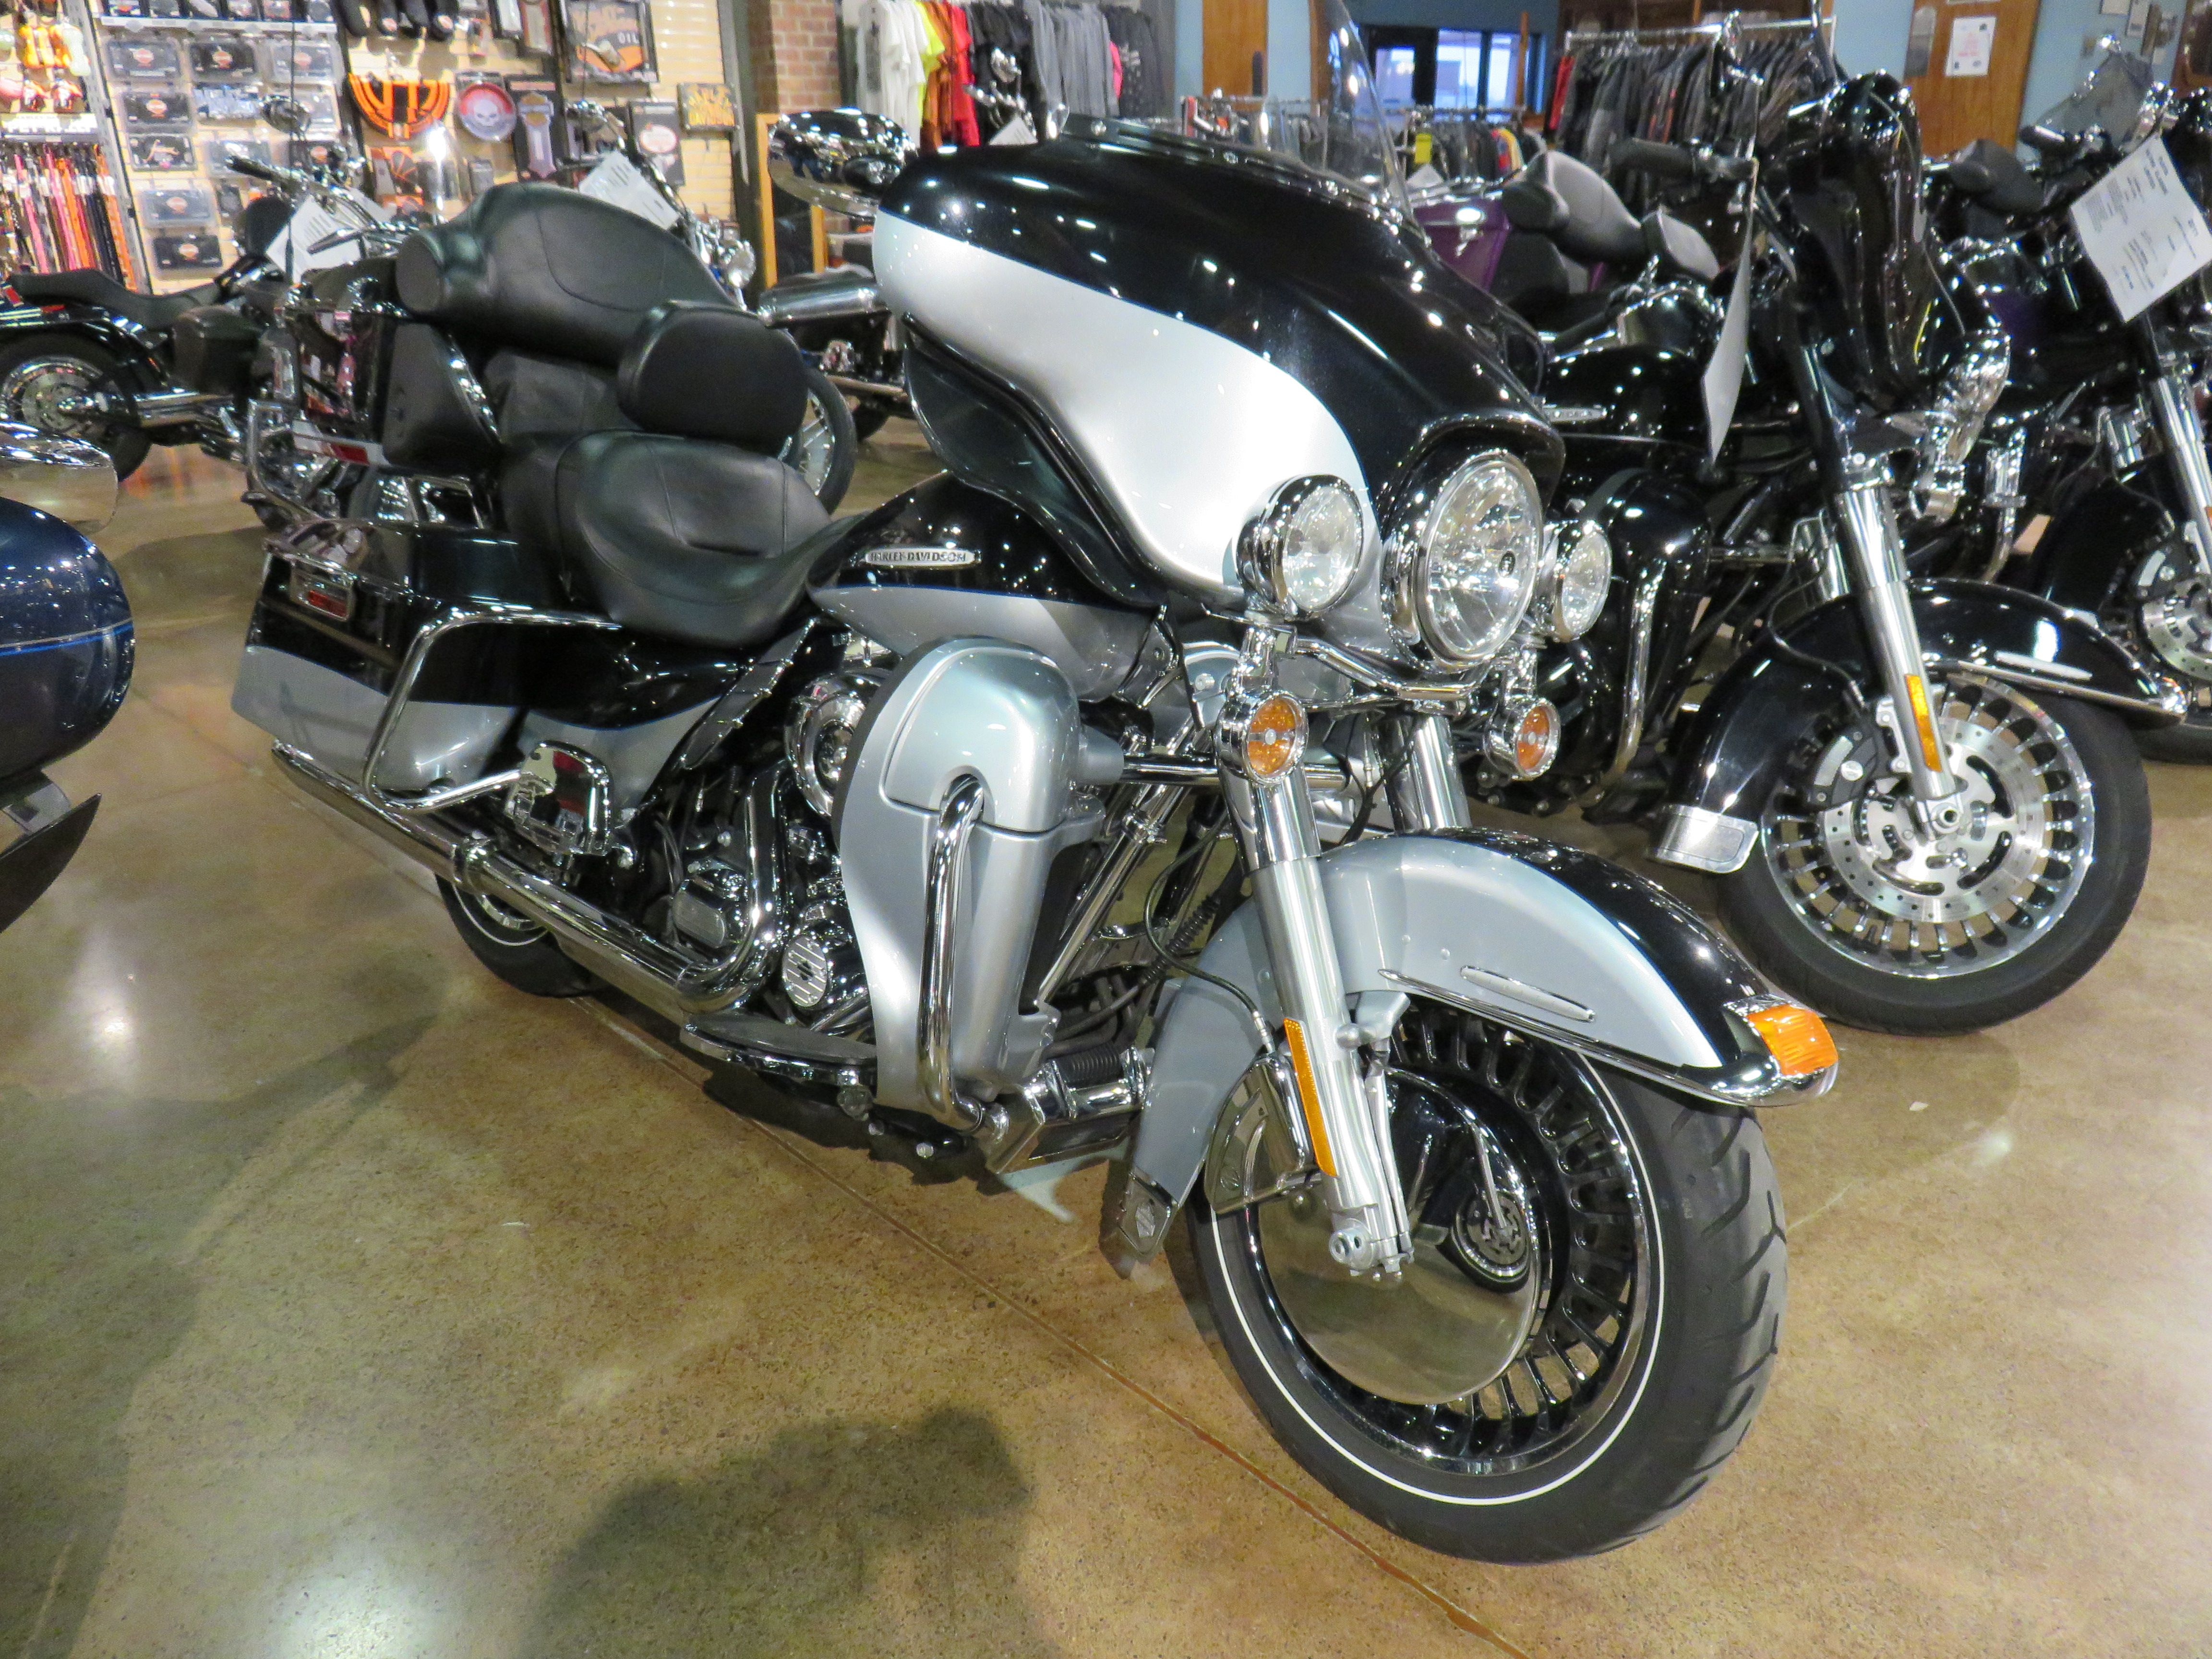 2013 harley davidson electra glide ultra limited two tone midnight pearl